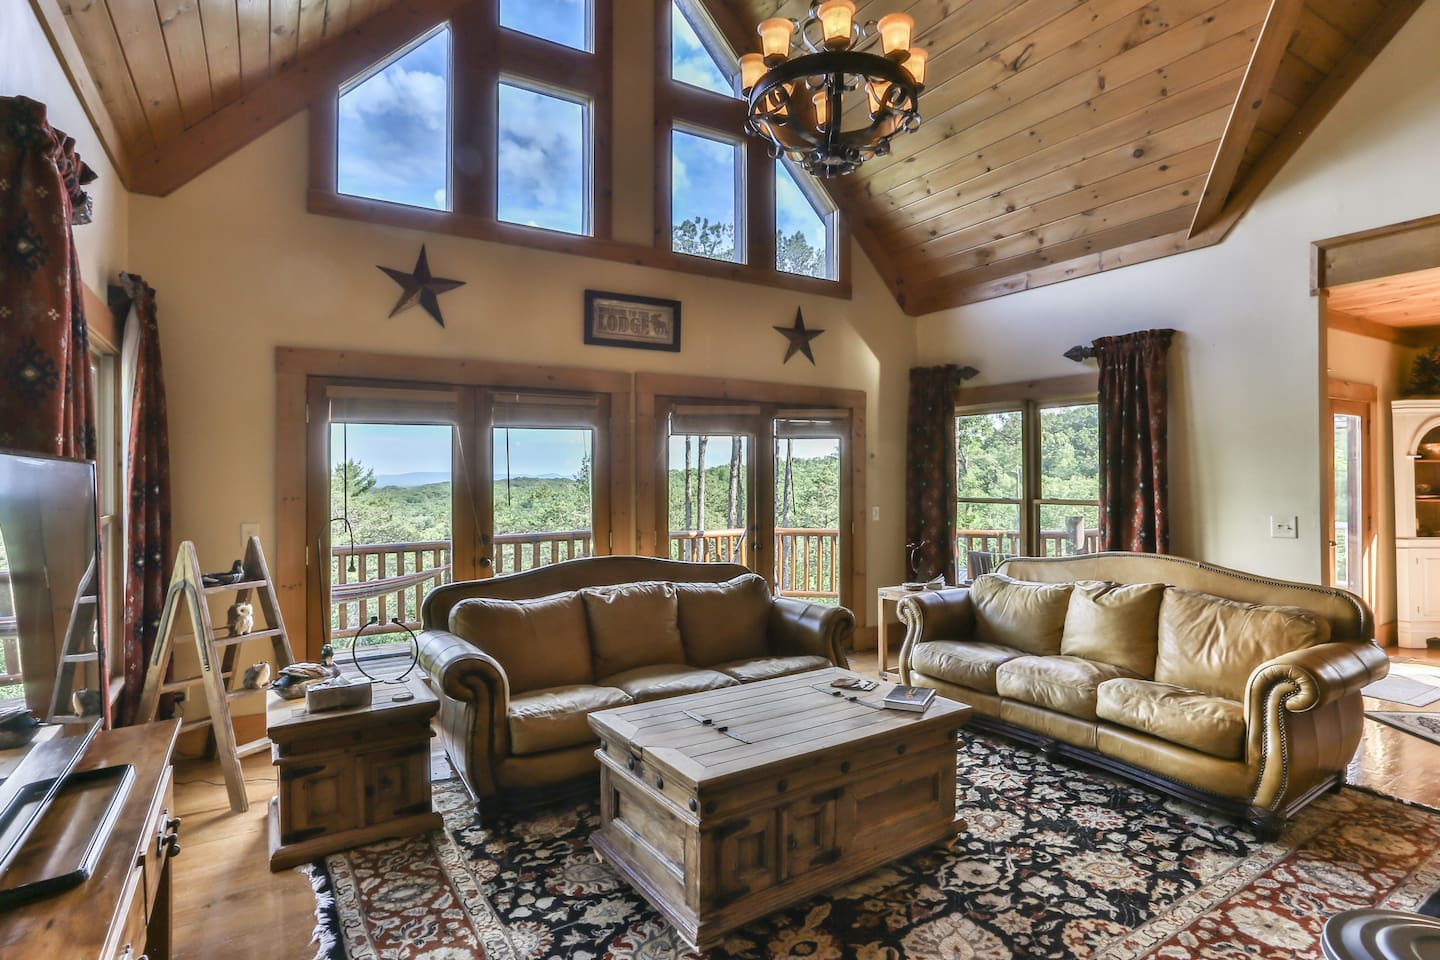 Rare 5 bedroom lodge with stunning mountain views overlooking 500 acres of unspoiled wilderness